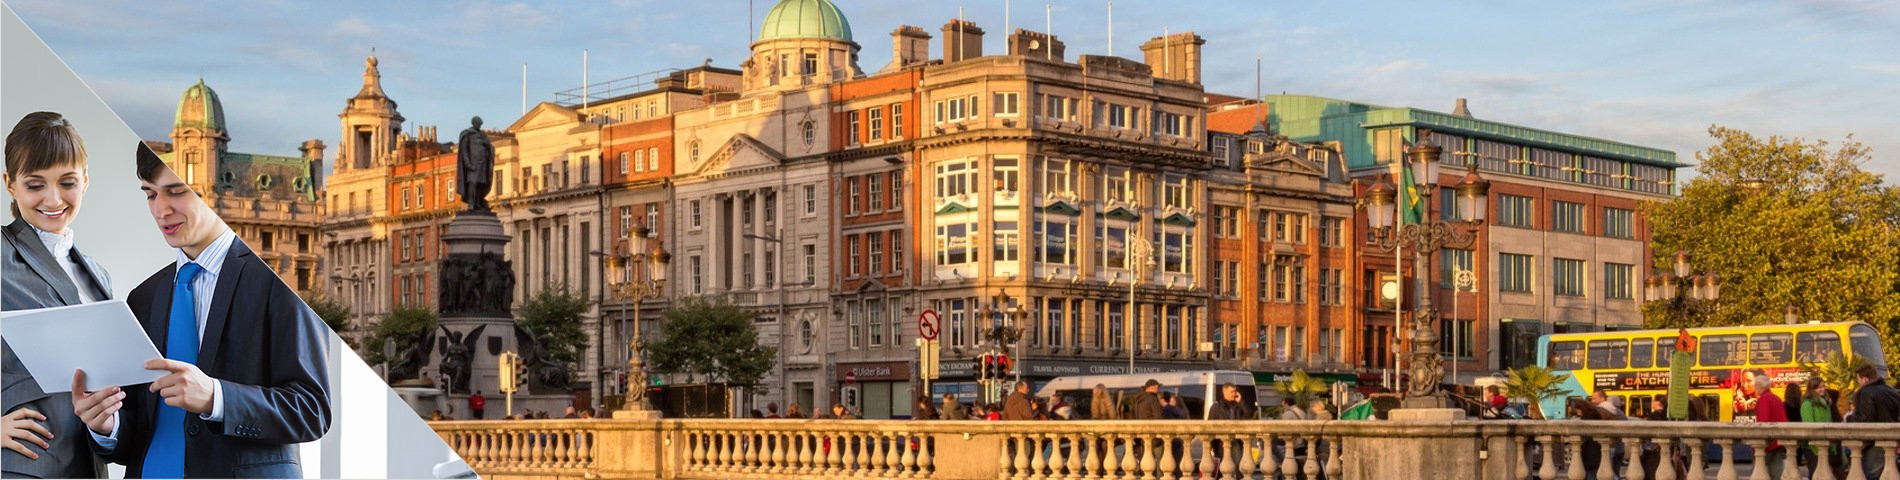 Dublin - Business Privat